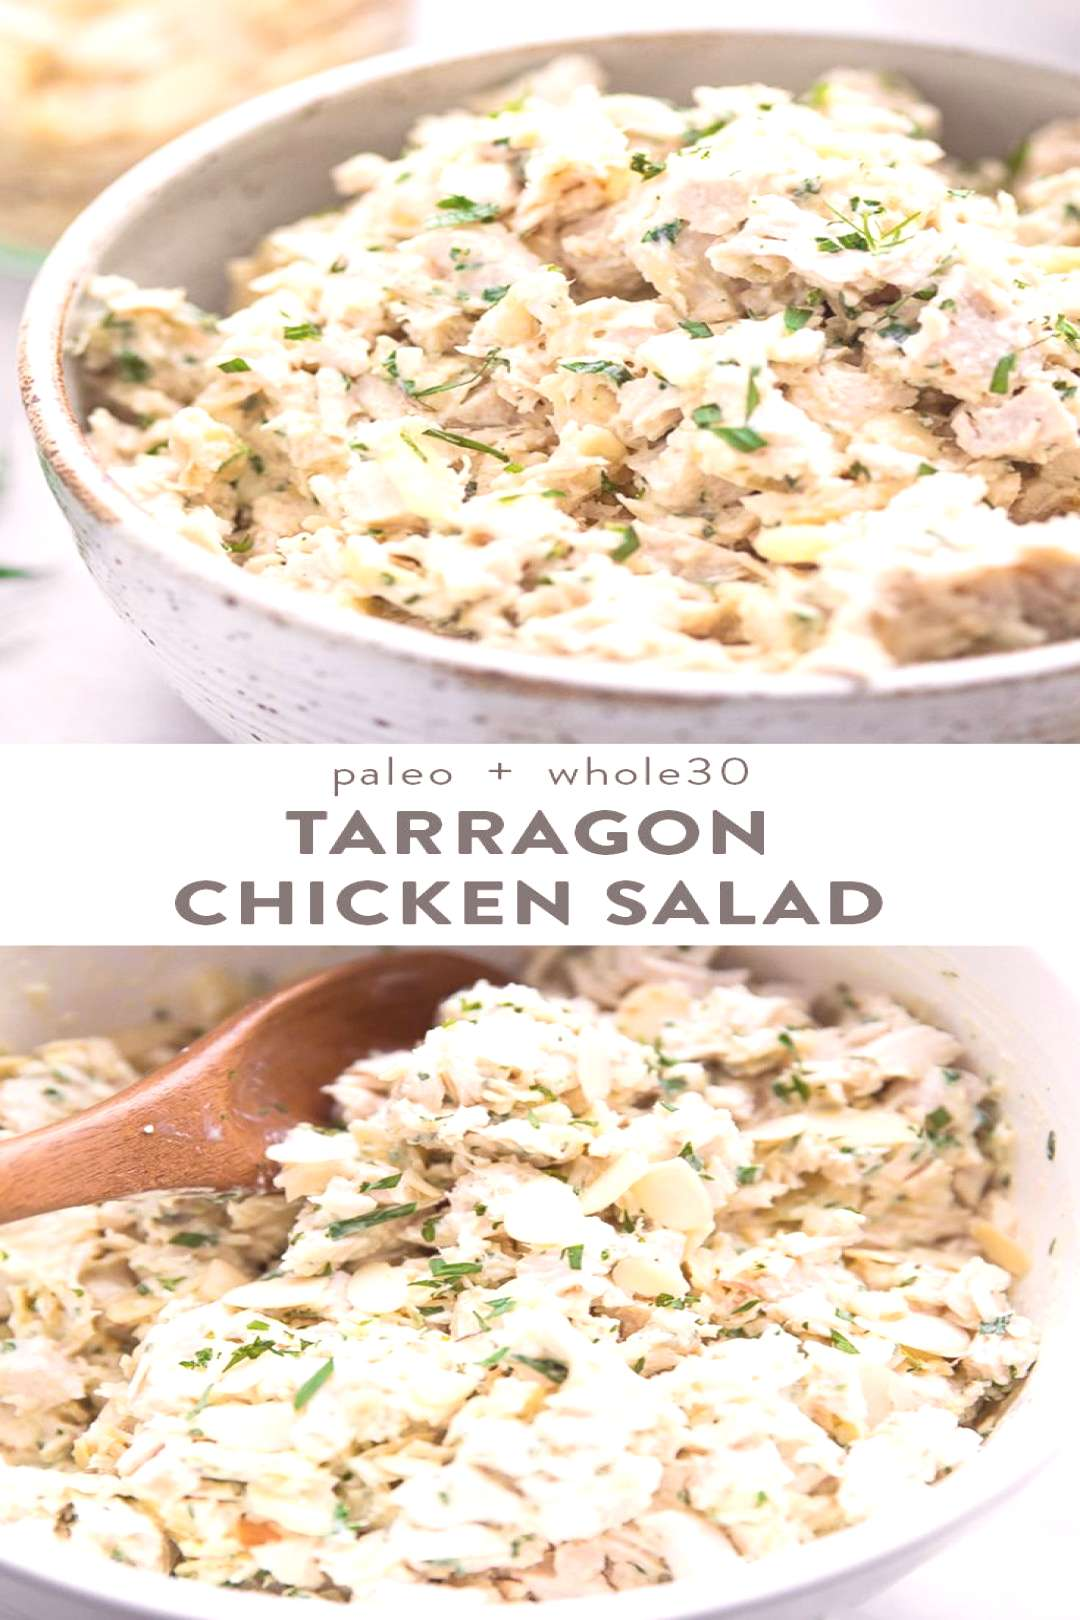 Tarragon Chicken Salad with Almonds -  This tarragon chicken salad with almonds is absolutely delic